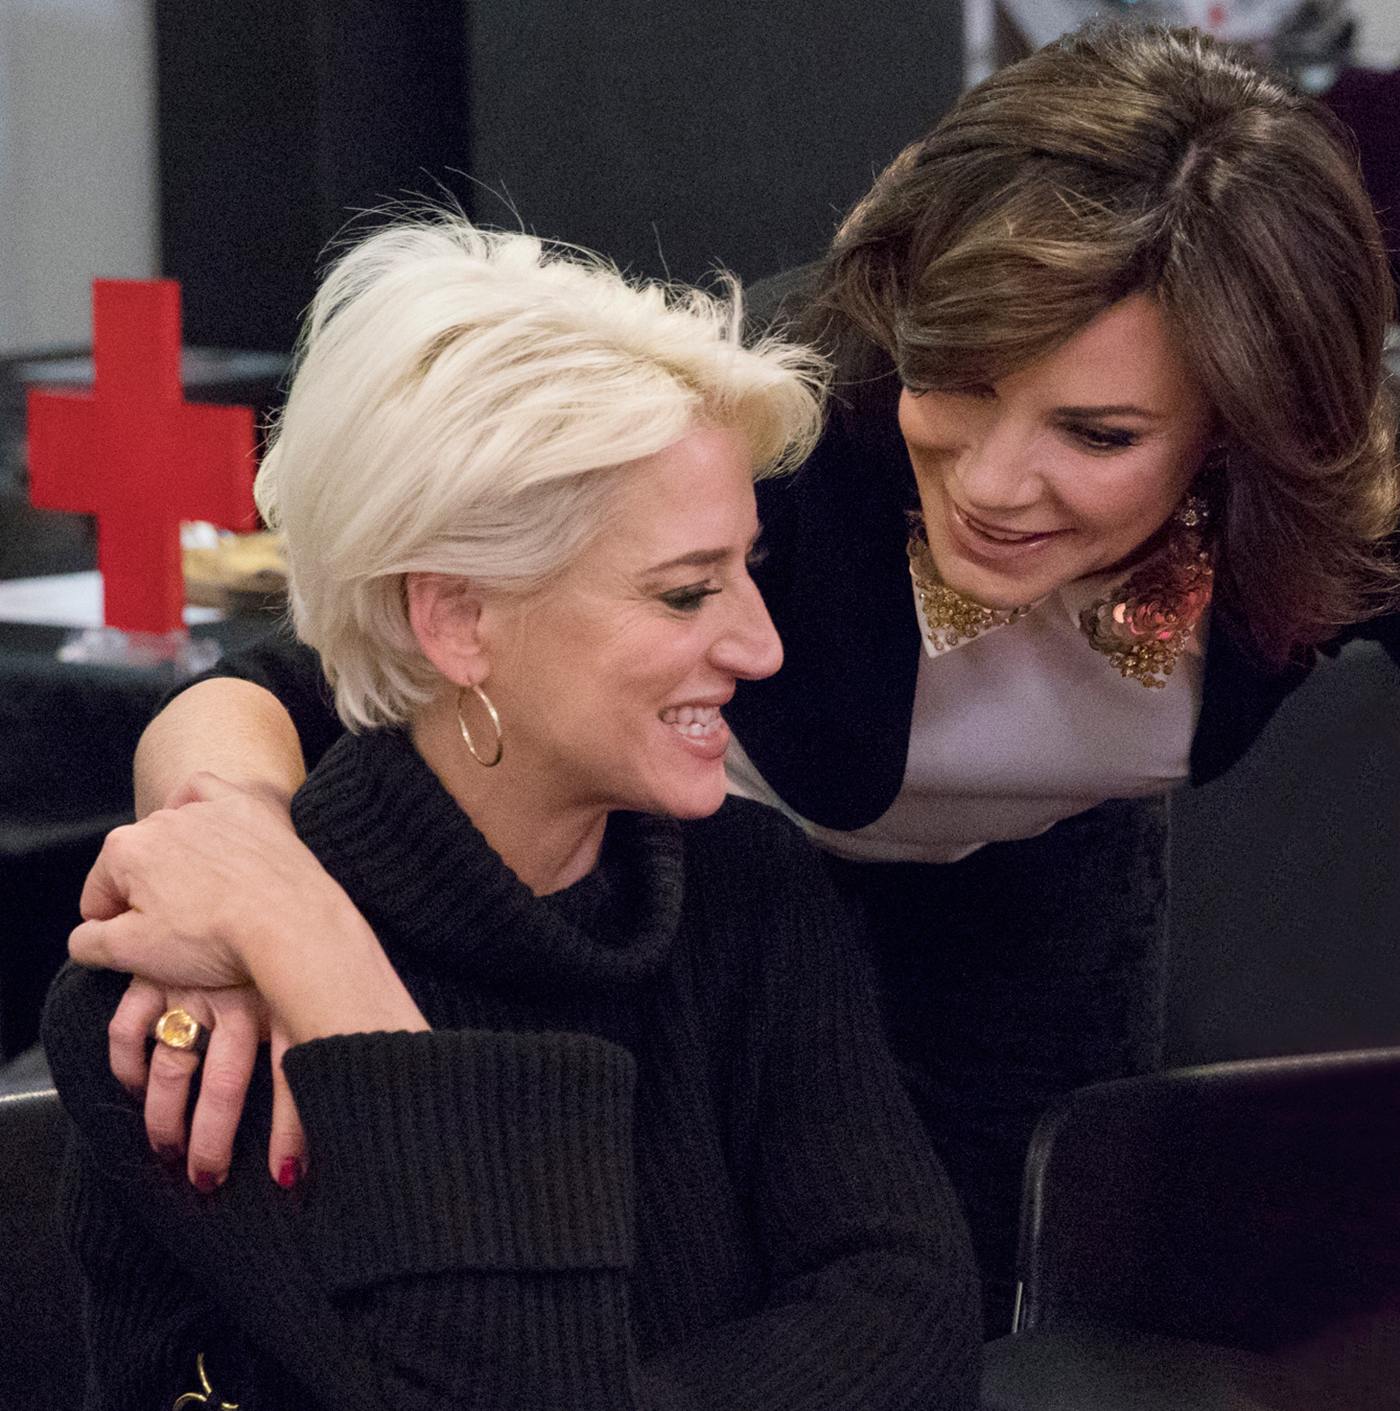 RHONY's Dorinda Medley Defends Her Relationship With Luann de Lesseps After Family Lawsuit Drama: Watch - Dorinda Medley and Luann de Lesseps on 'The Real Housewives of New York City.